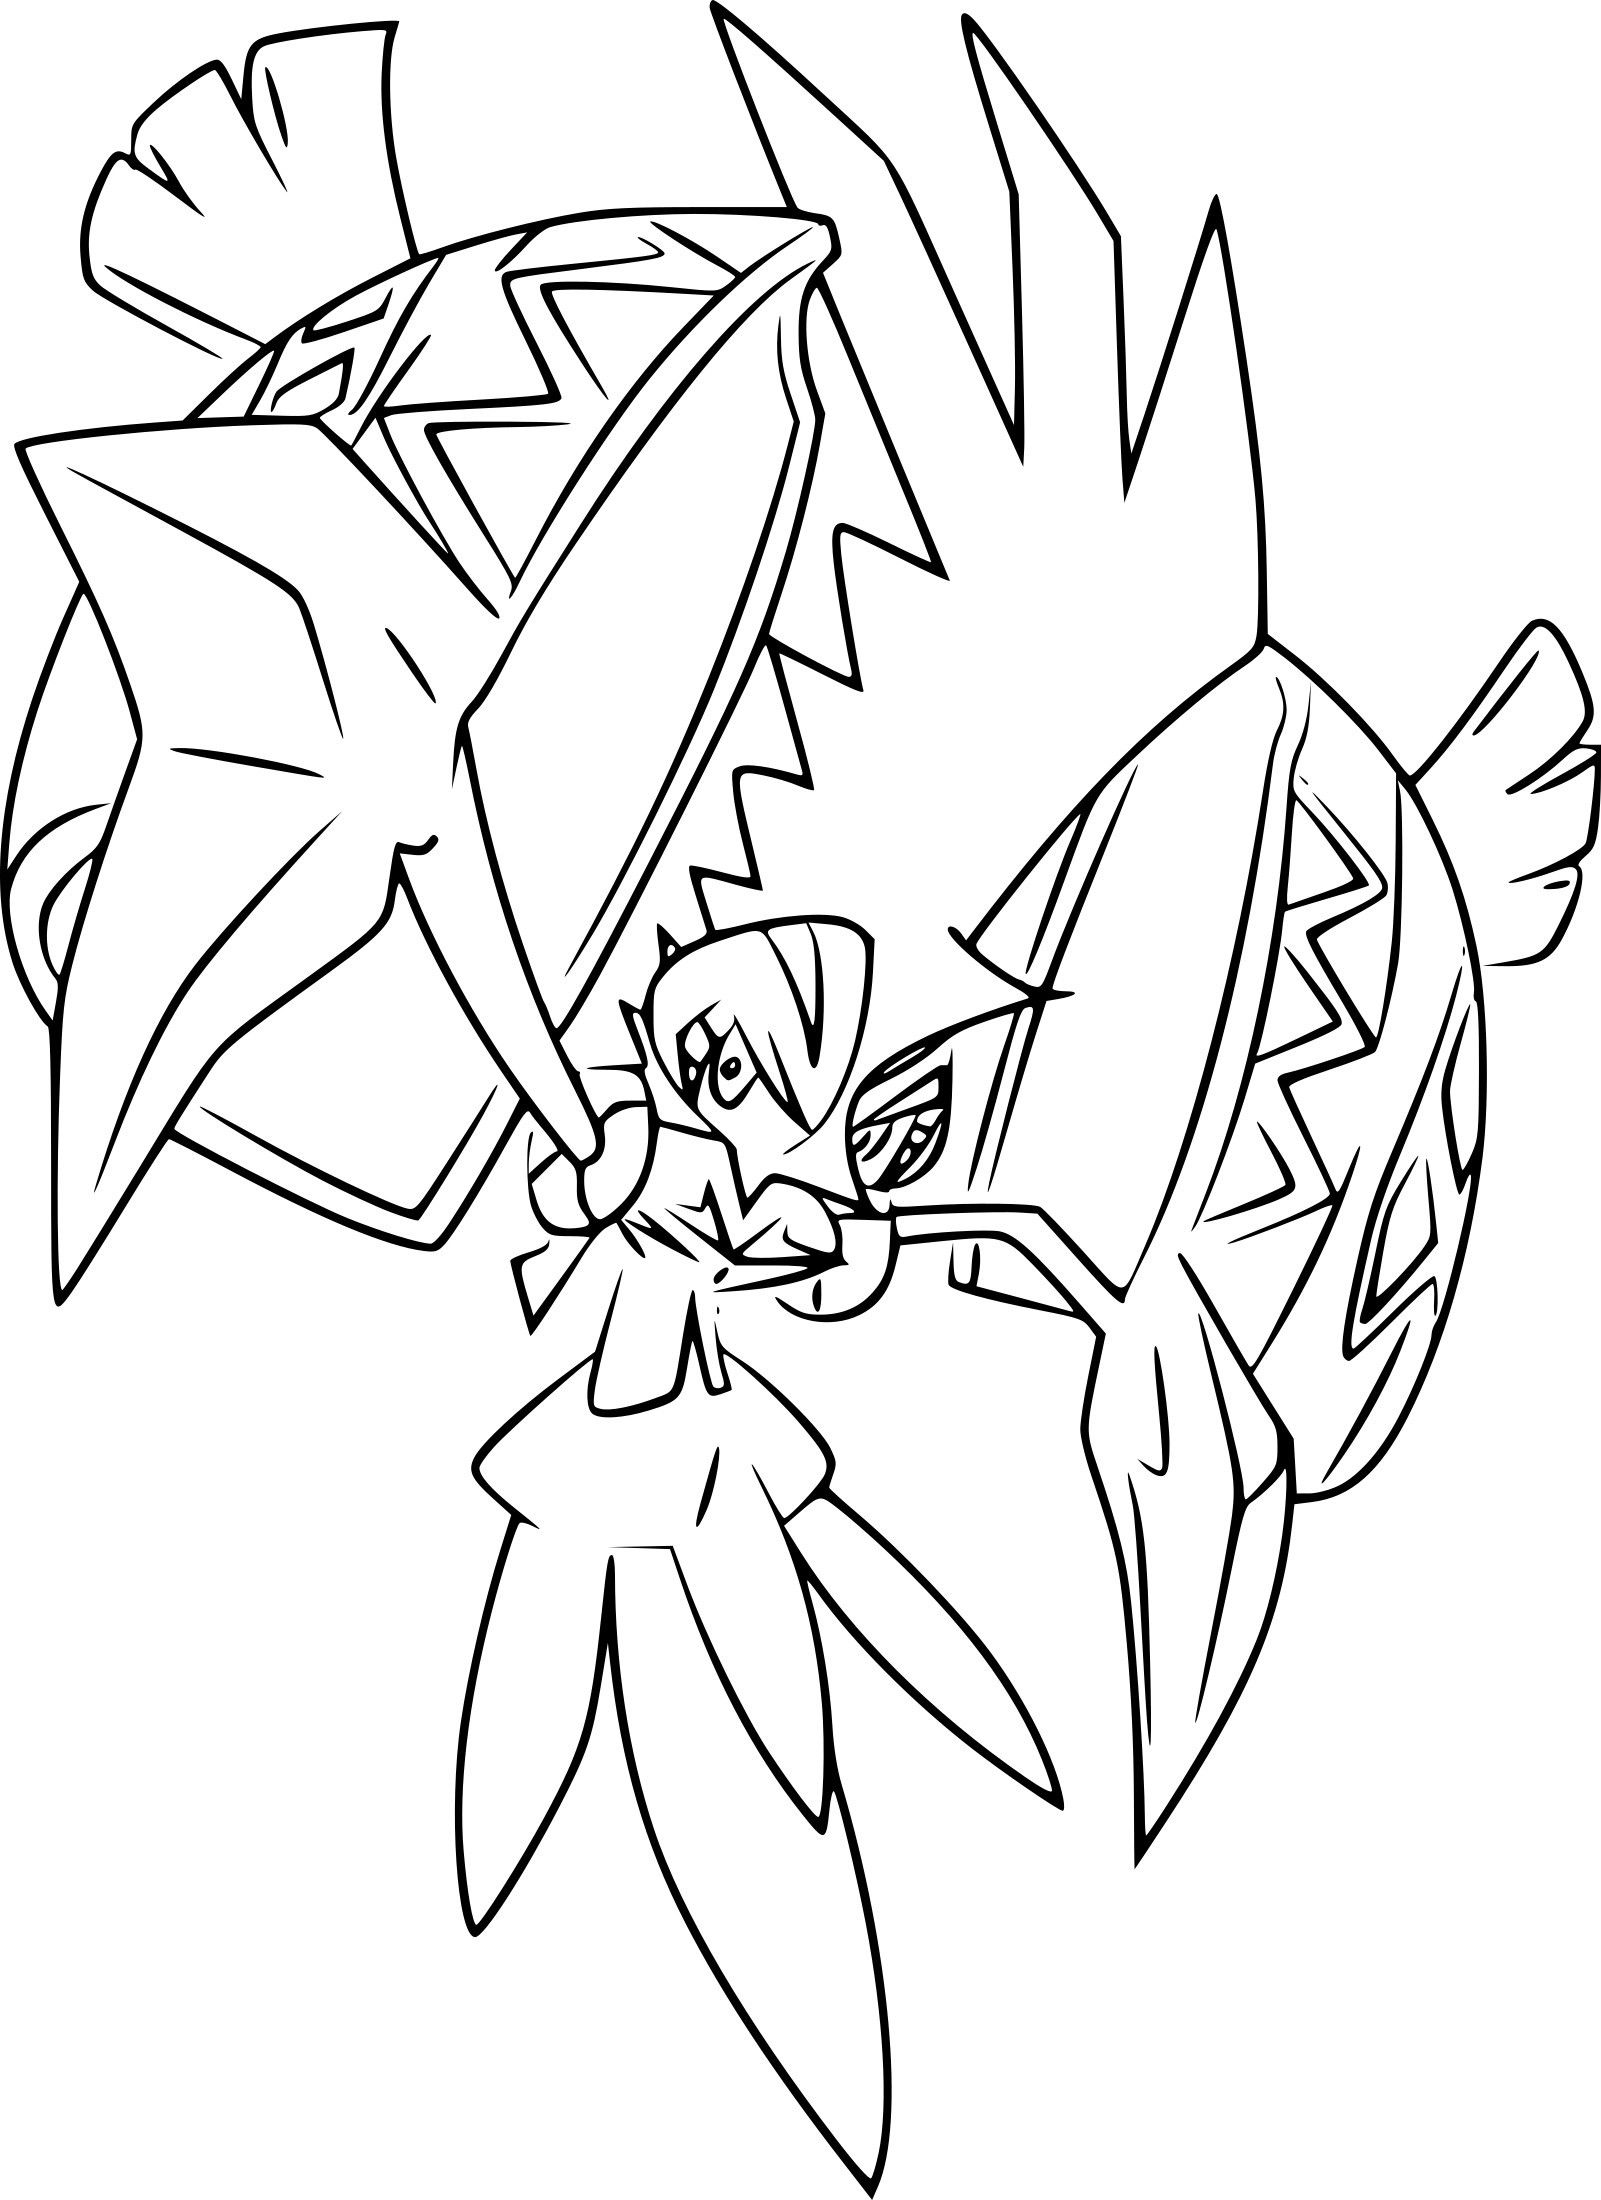 Ultra Beast Pokemon Coloring Page Hd Background